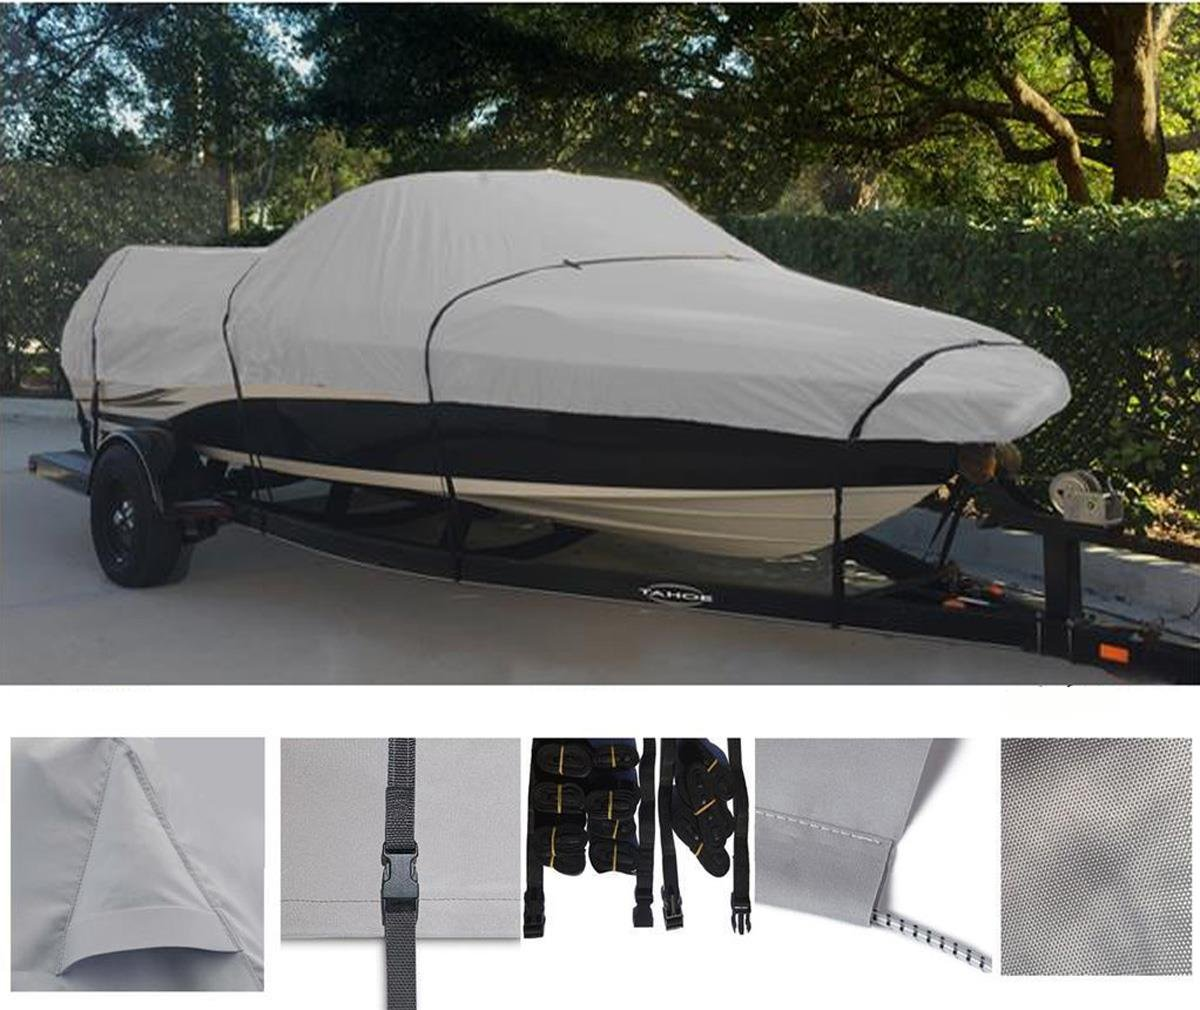 GREY, STORAGE, TRAVEL, MOORING BOAT COVER FOR KEY WEST 1520 EX 1998-2003 by SBU